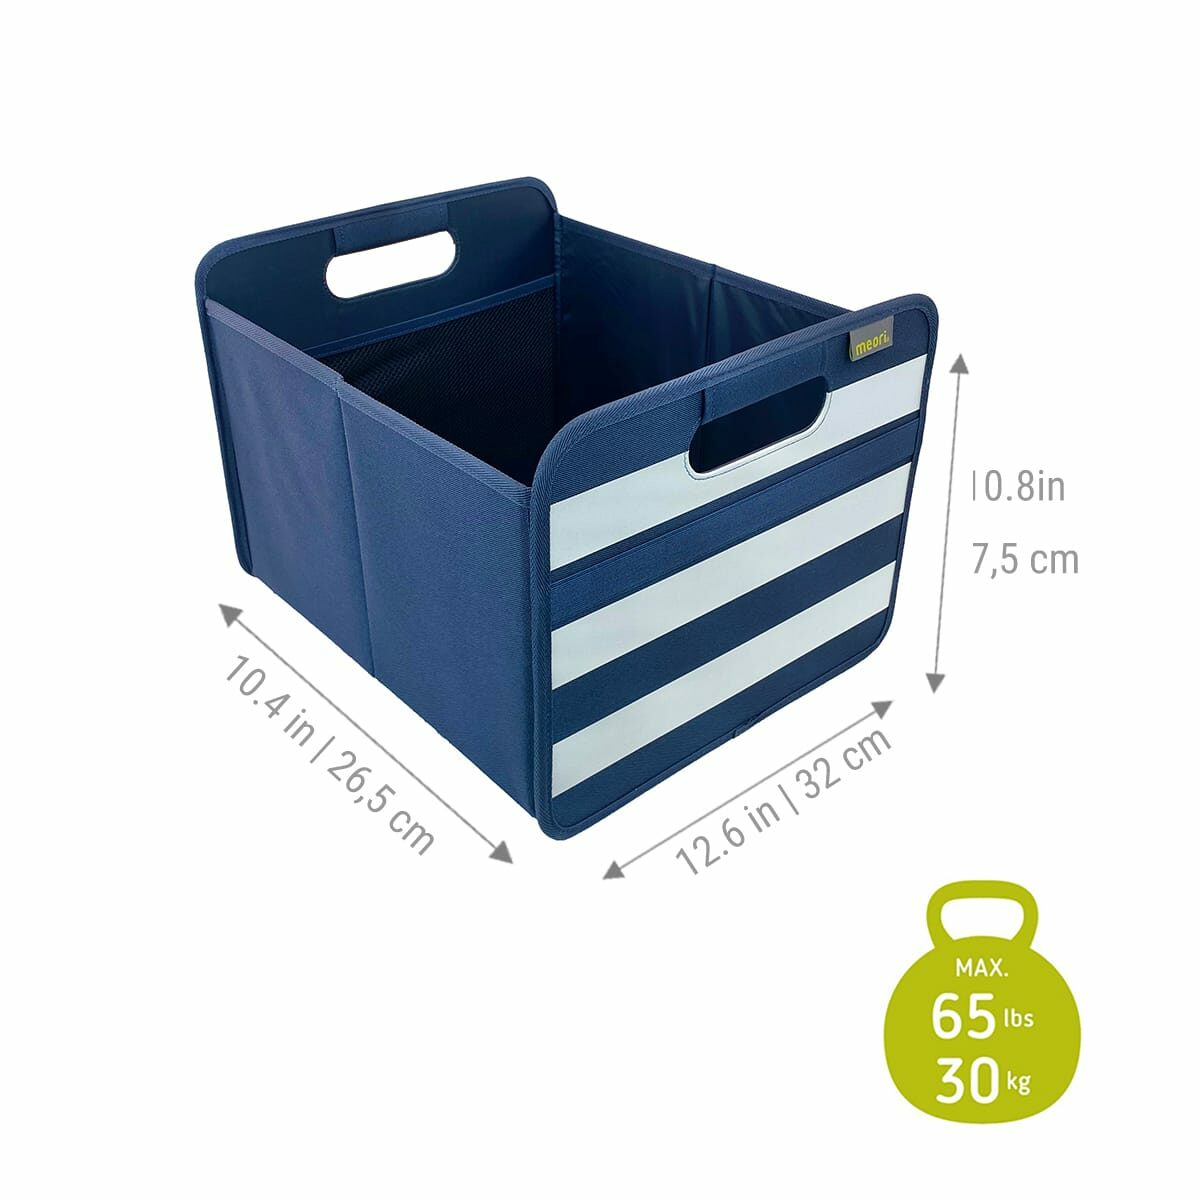 A100734 4 Storage Bins meori Foldable Box Medium Marine Blue Stripes